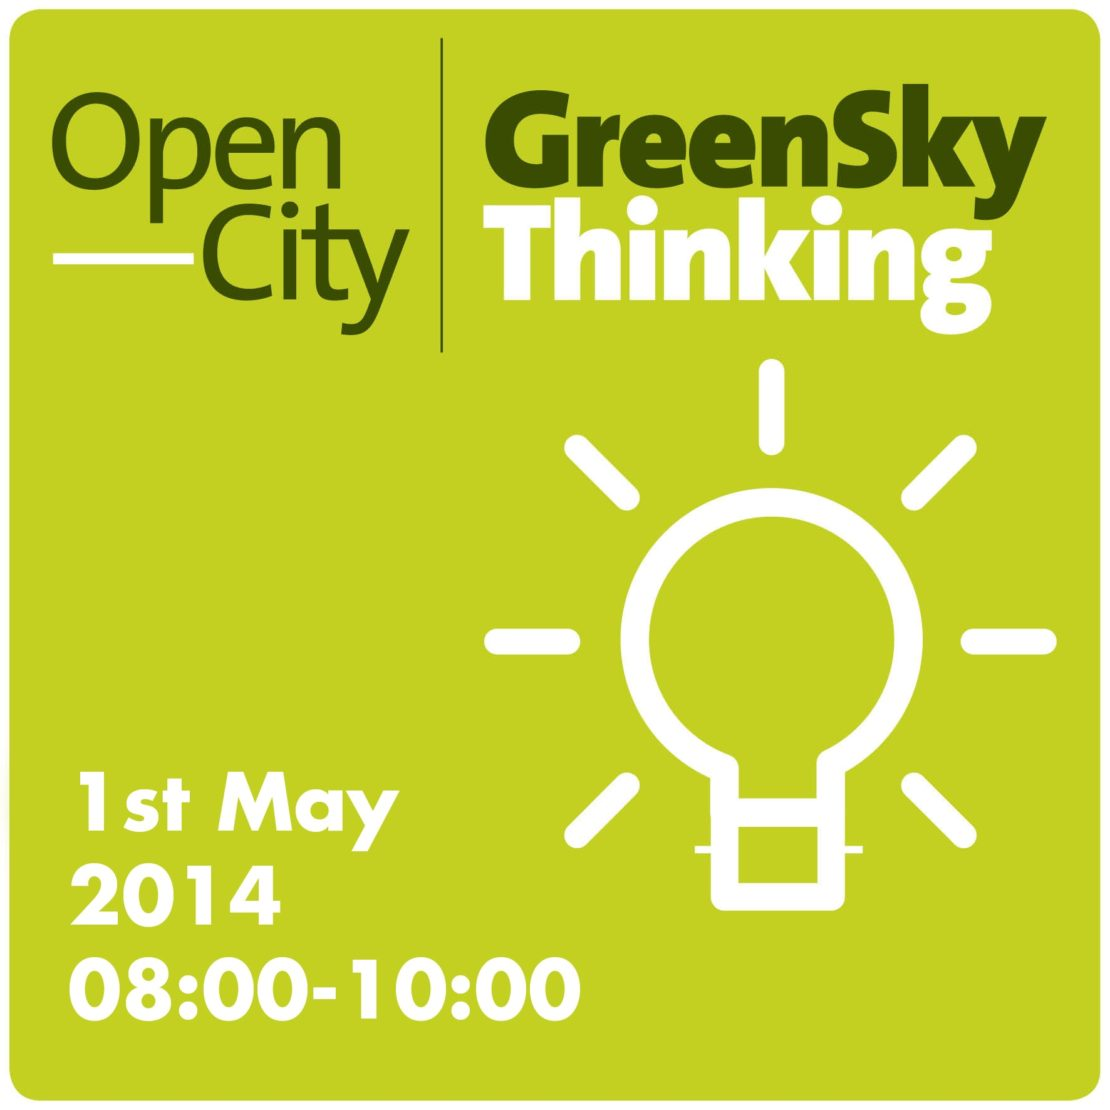 Green Sky Thinking: Retrofit for Purpose